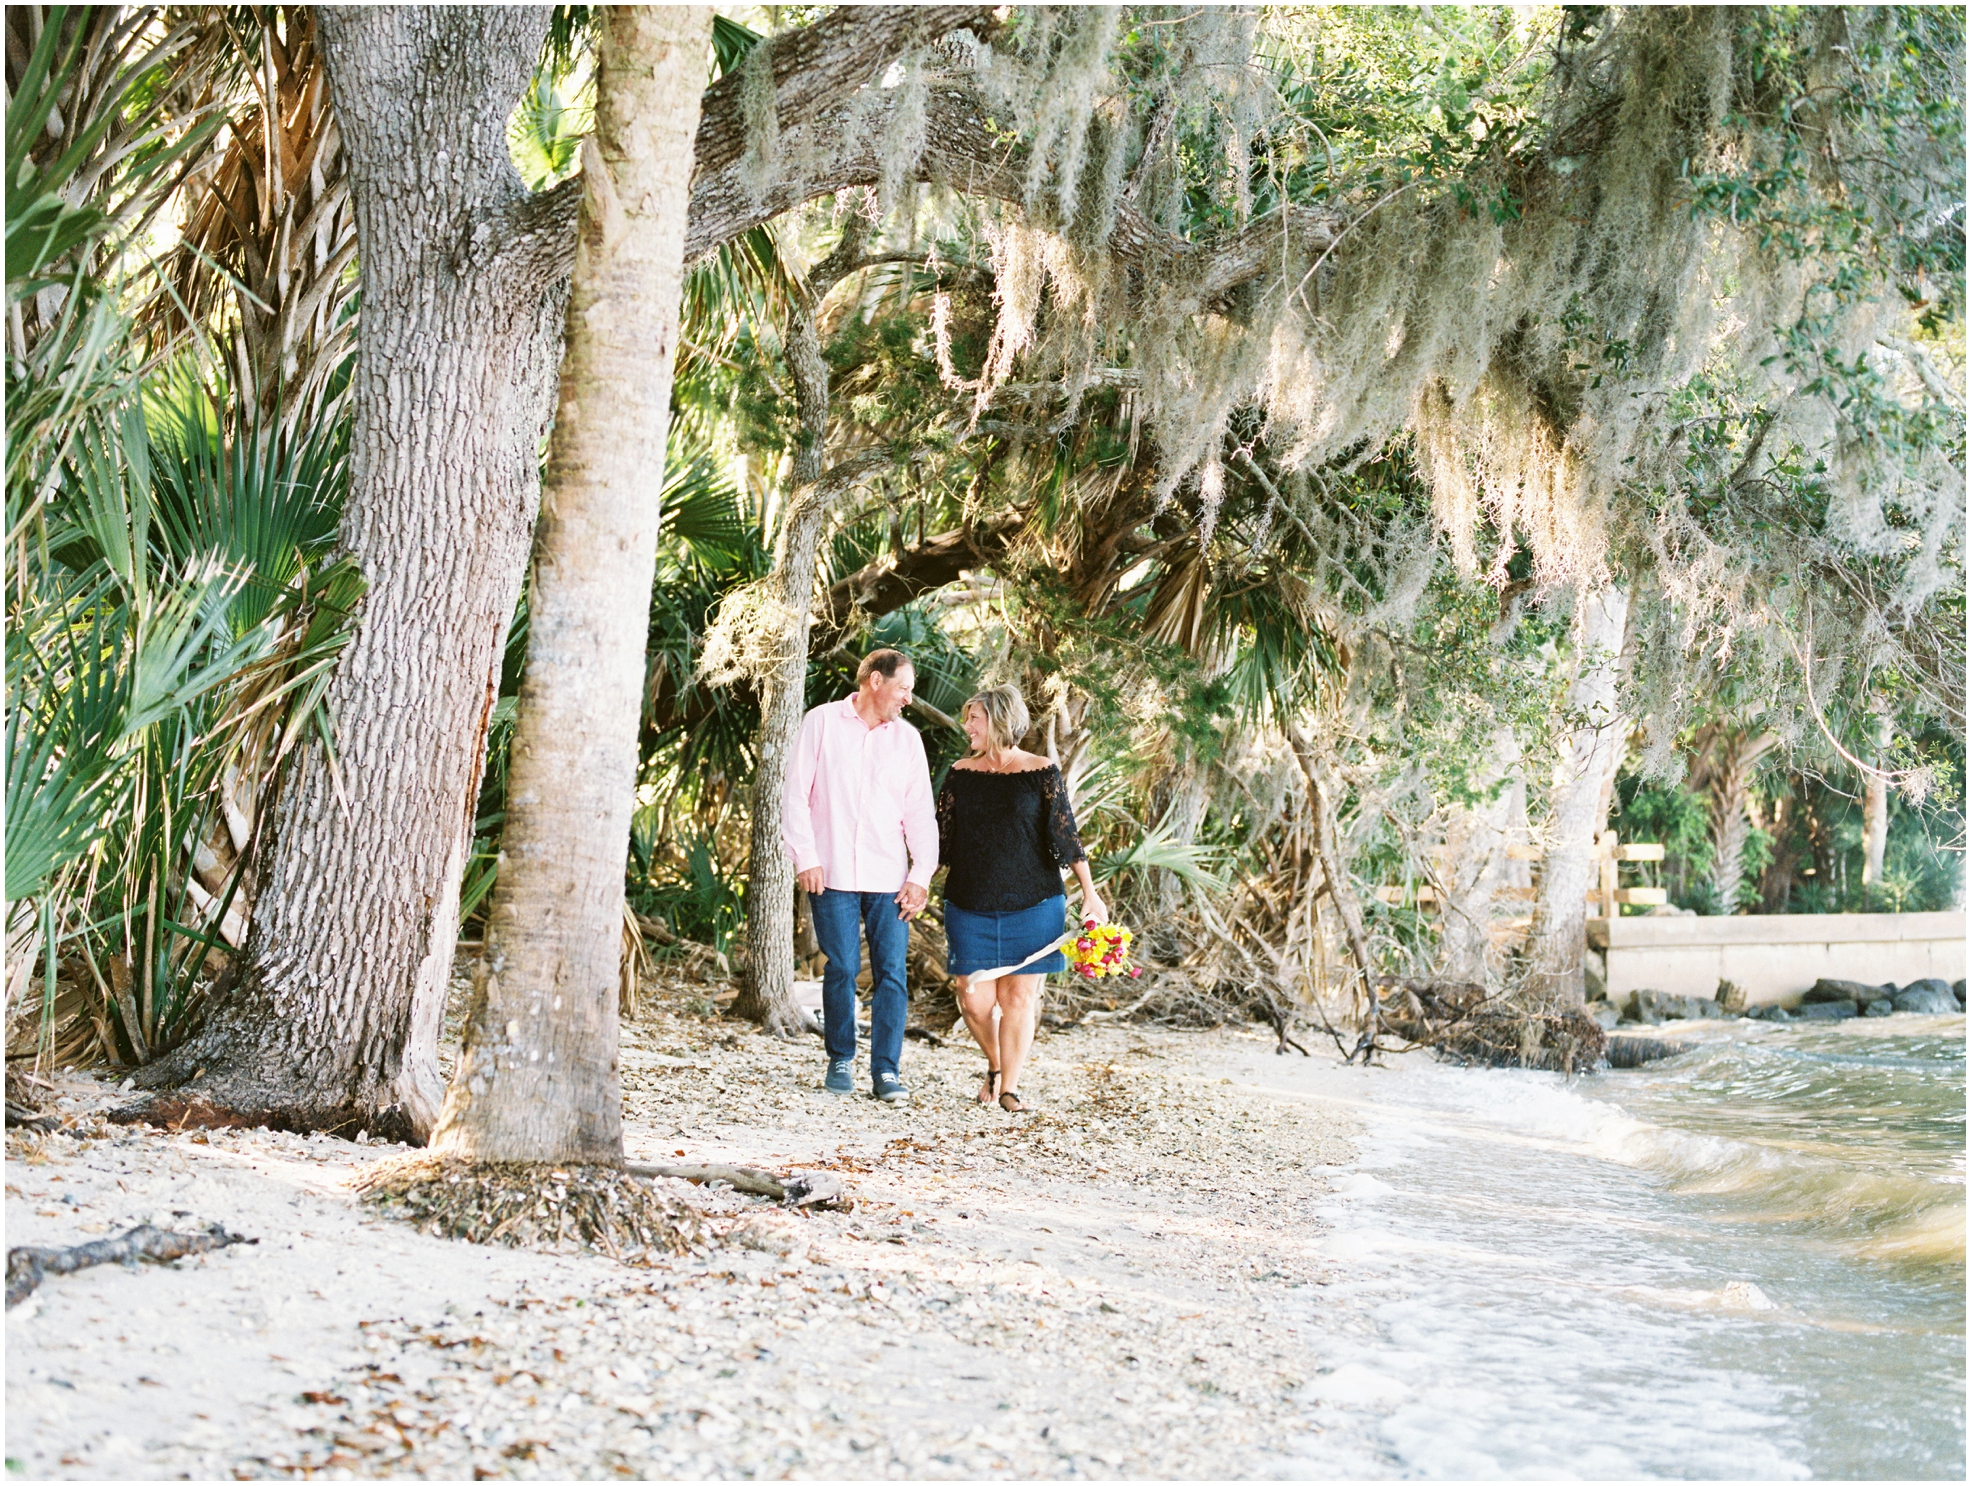 Lisa Silva Photography- Jacksonville, St. Augustine, Amelia Island, Ponte Vedra Beach, North East Florida Fine Art Film Photographer- Anniversary Session at Washington Oaks in Palm Coast, Florida_0053.jpg